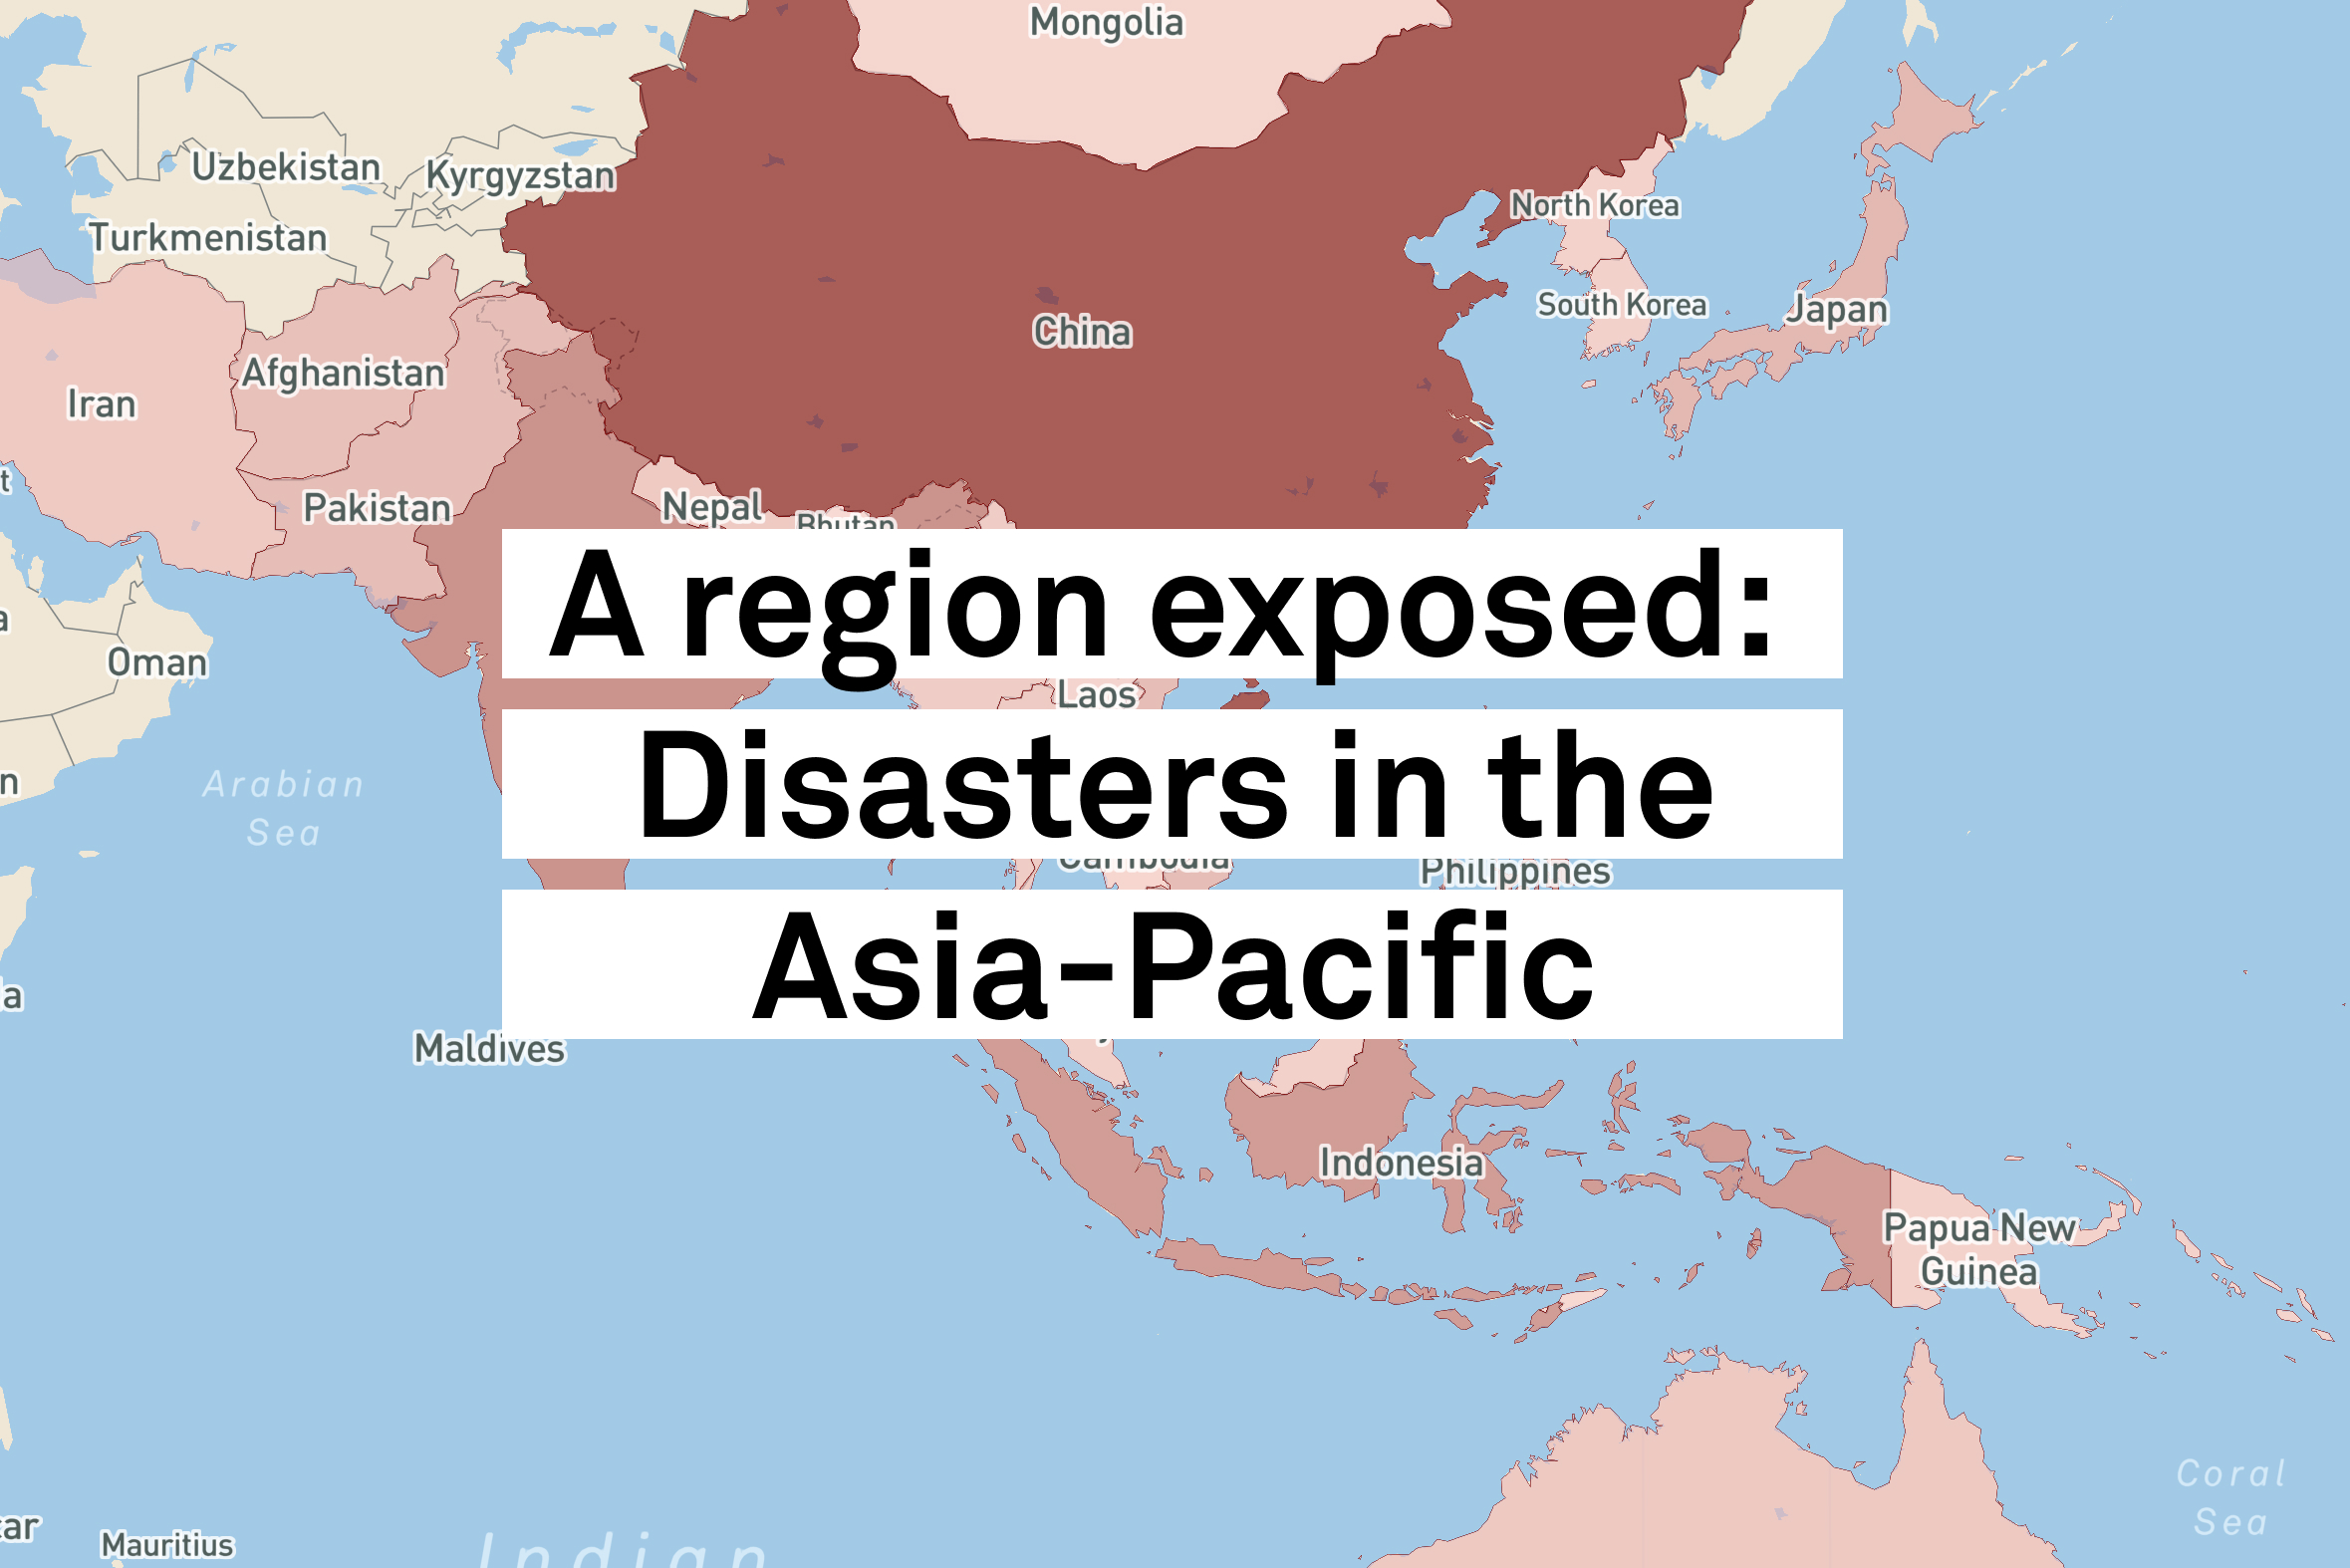 A region exposed: Disasters in the Asia-Pacific